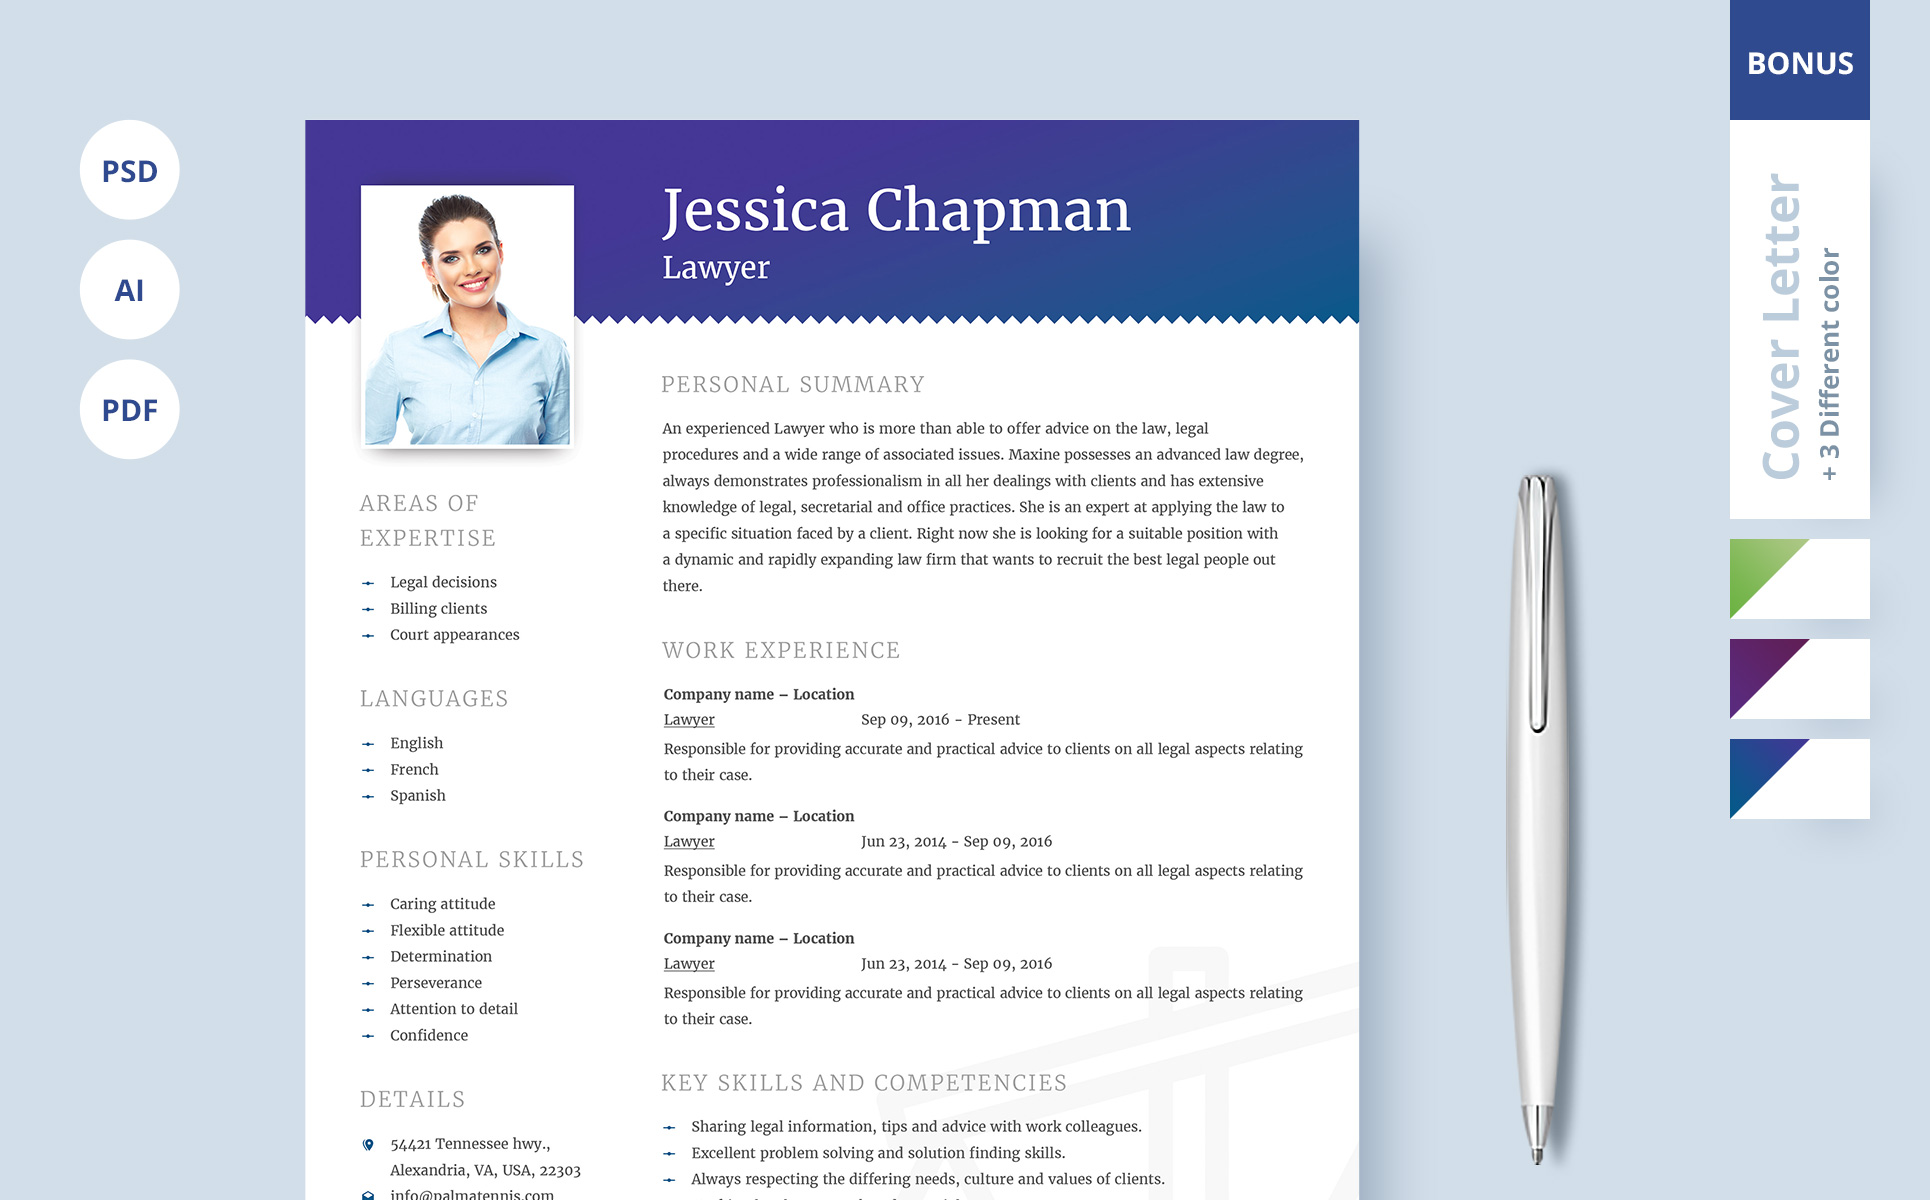 jessica chapman lawyer cv resume template big screenshot - Lawyer Resume Template Word